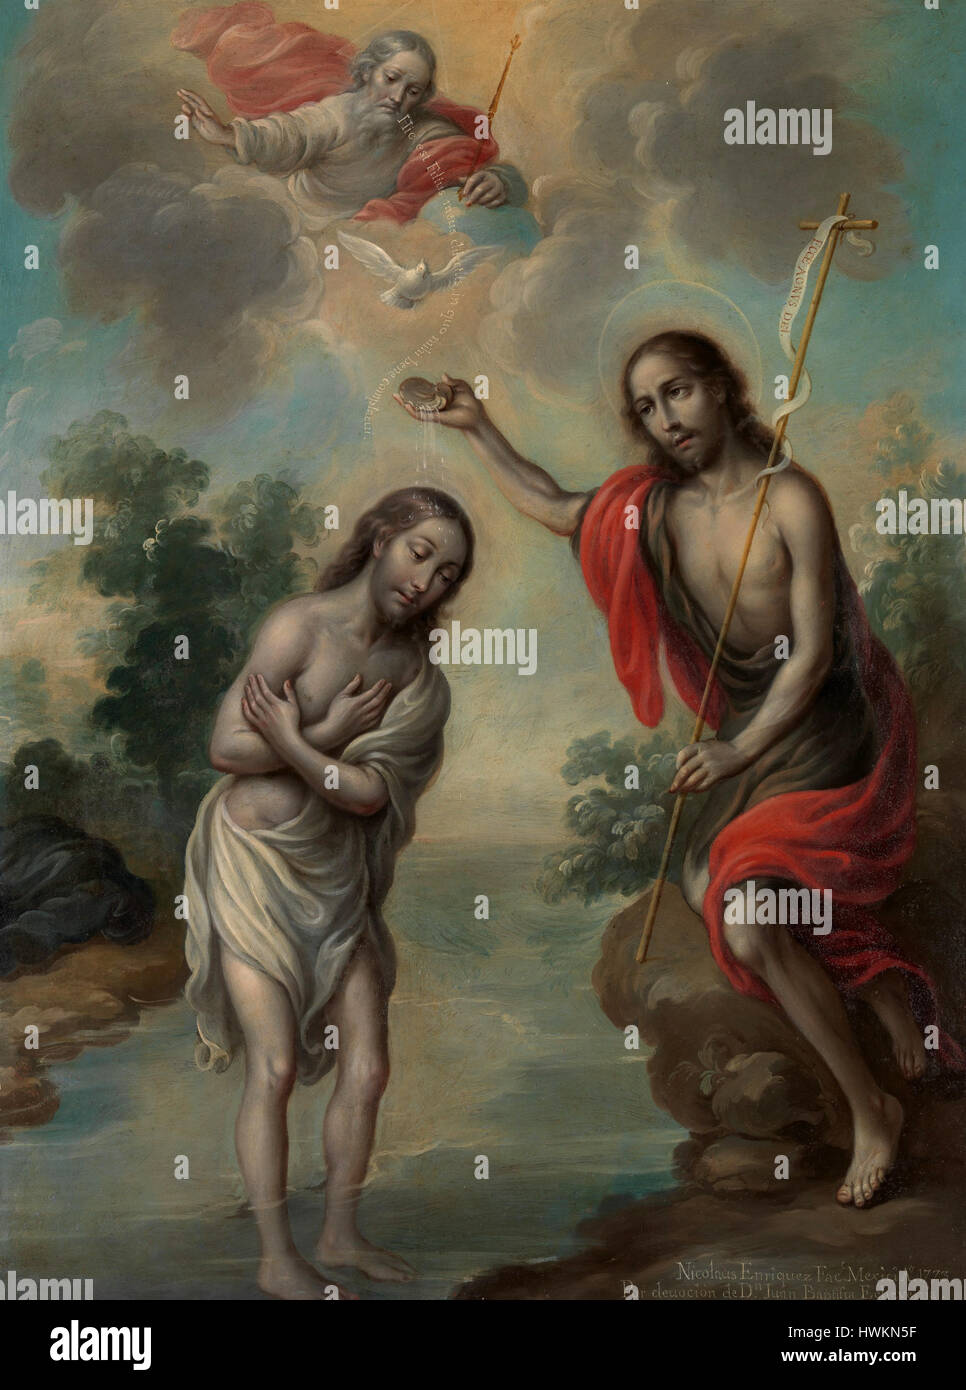 The Baptism of Christ by Nicolas Enriquez - Stock Image